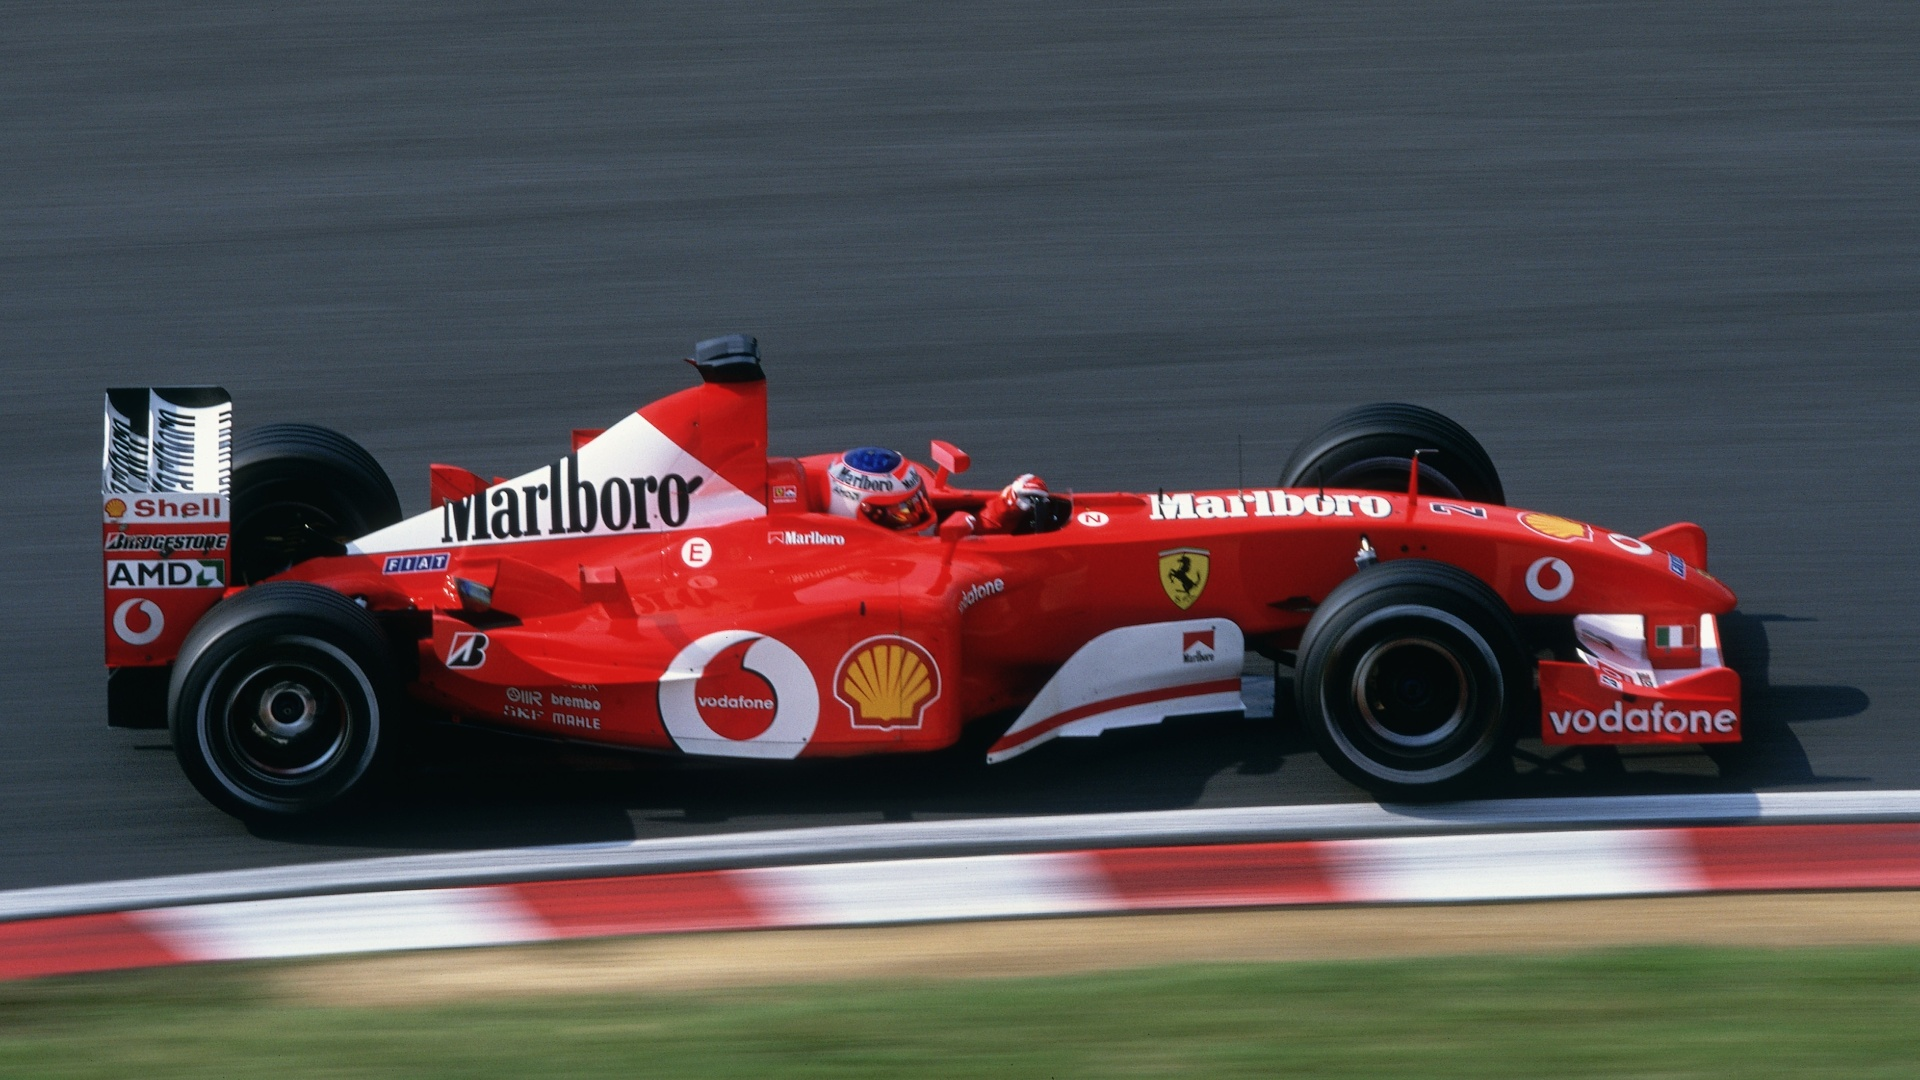 A Ferrari de Rubens Barrichello em 2002